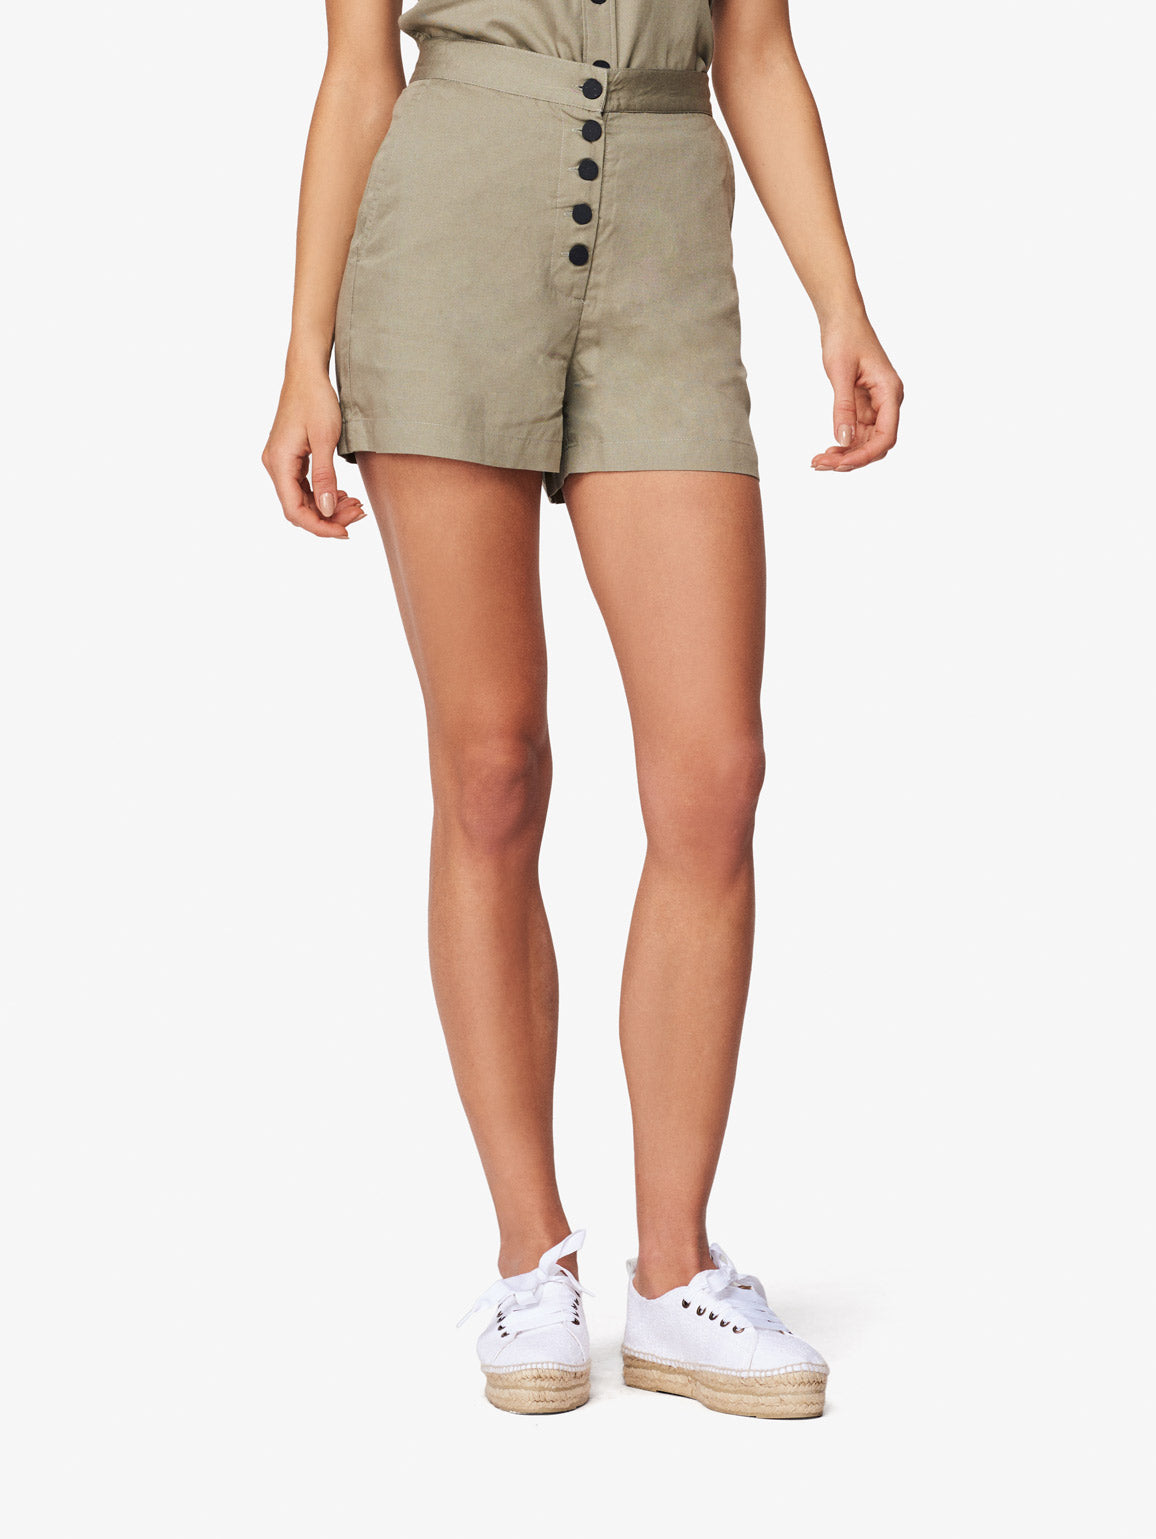 Image of Cortlandt Alley High Waisted Shorts / Sea Grass